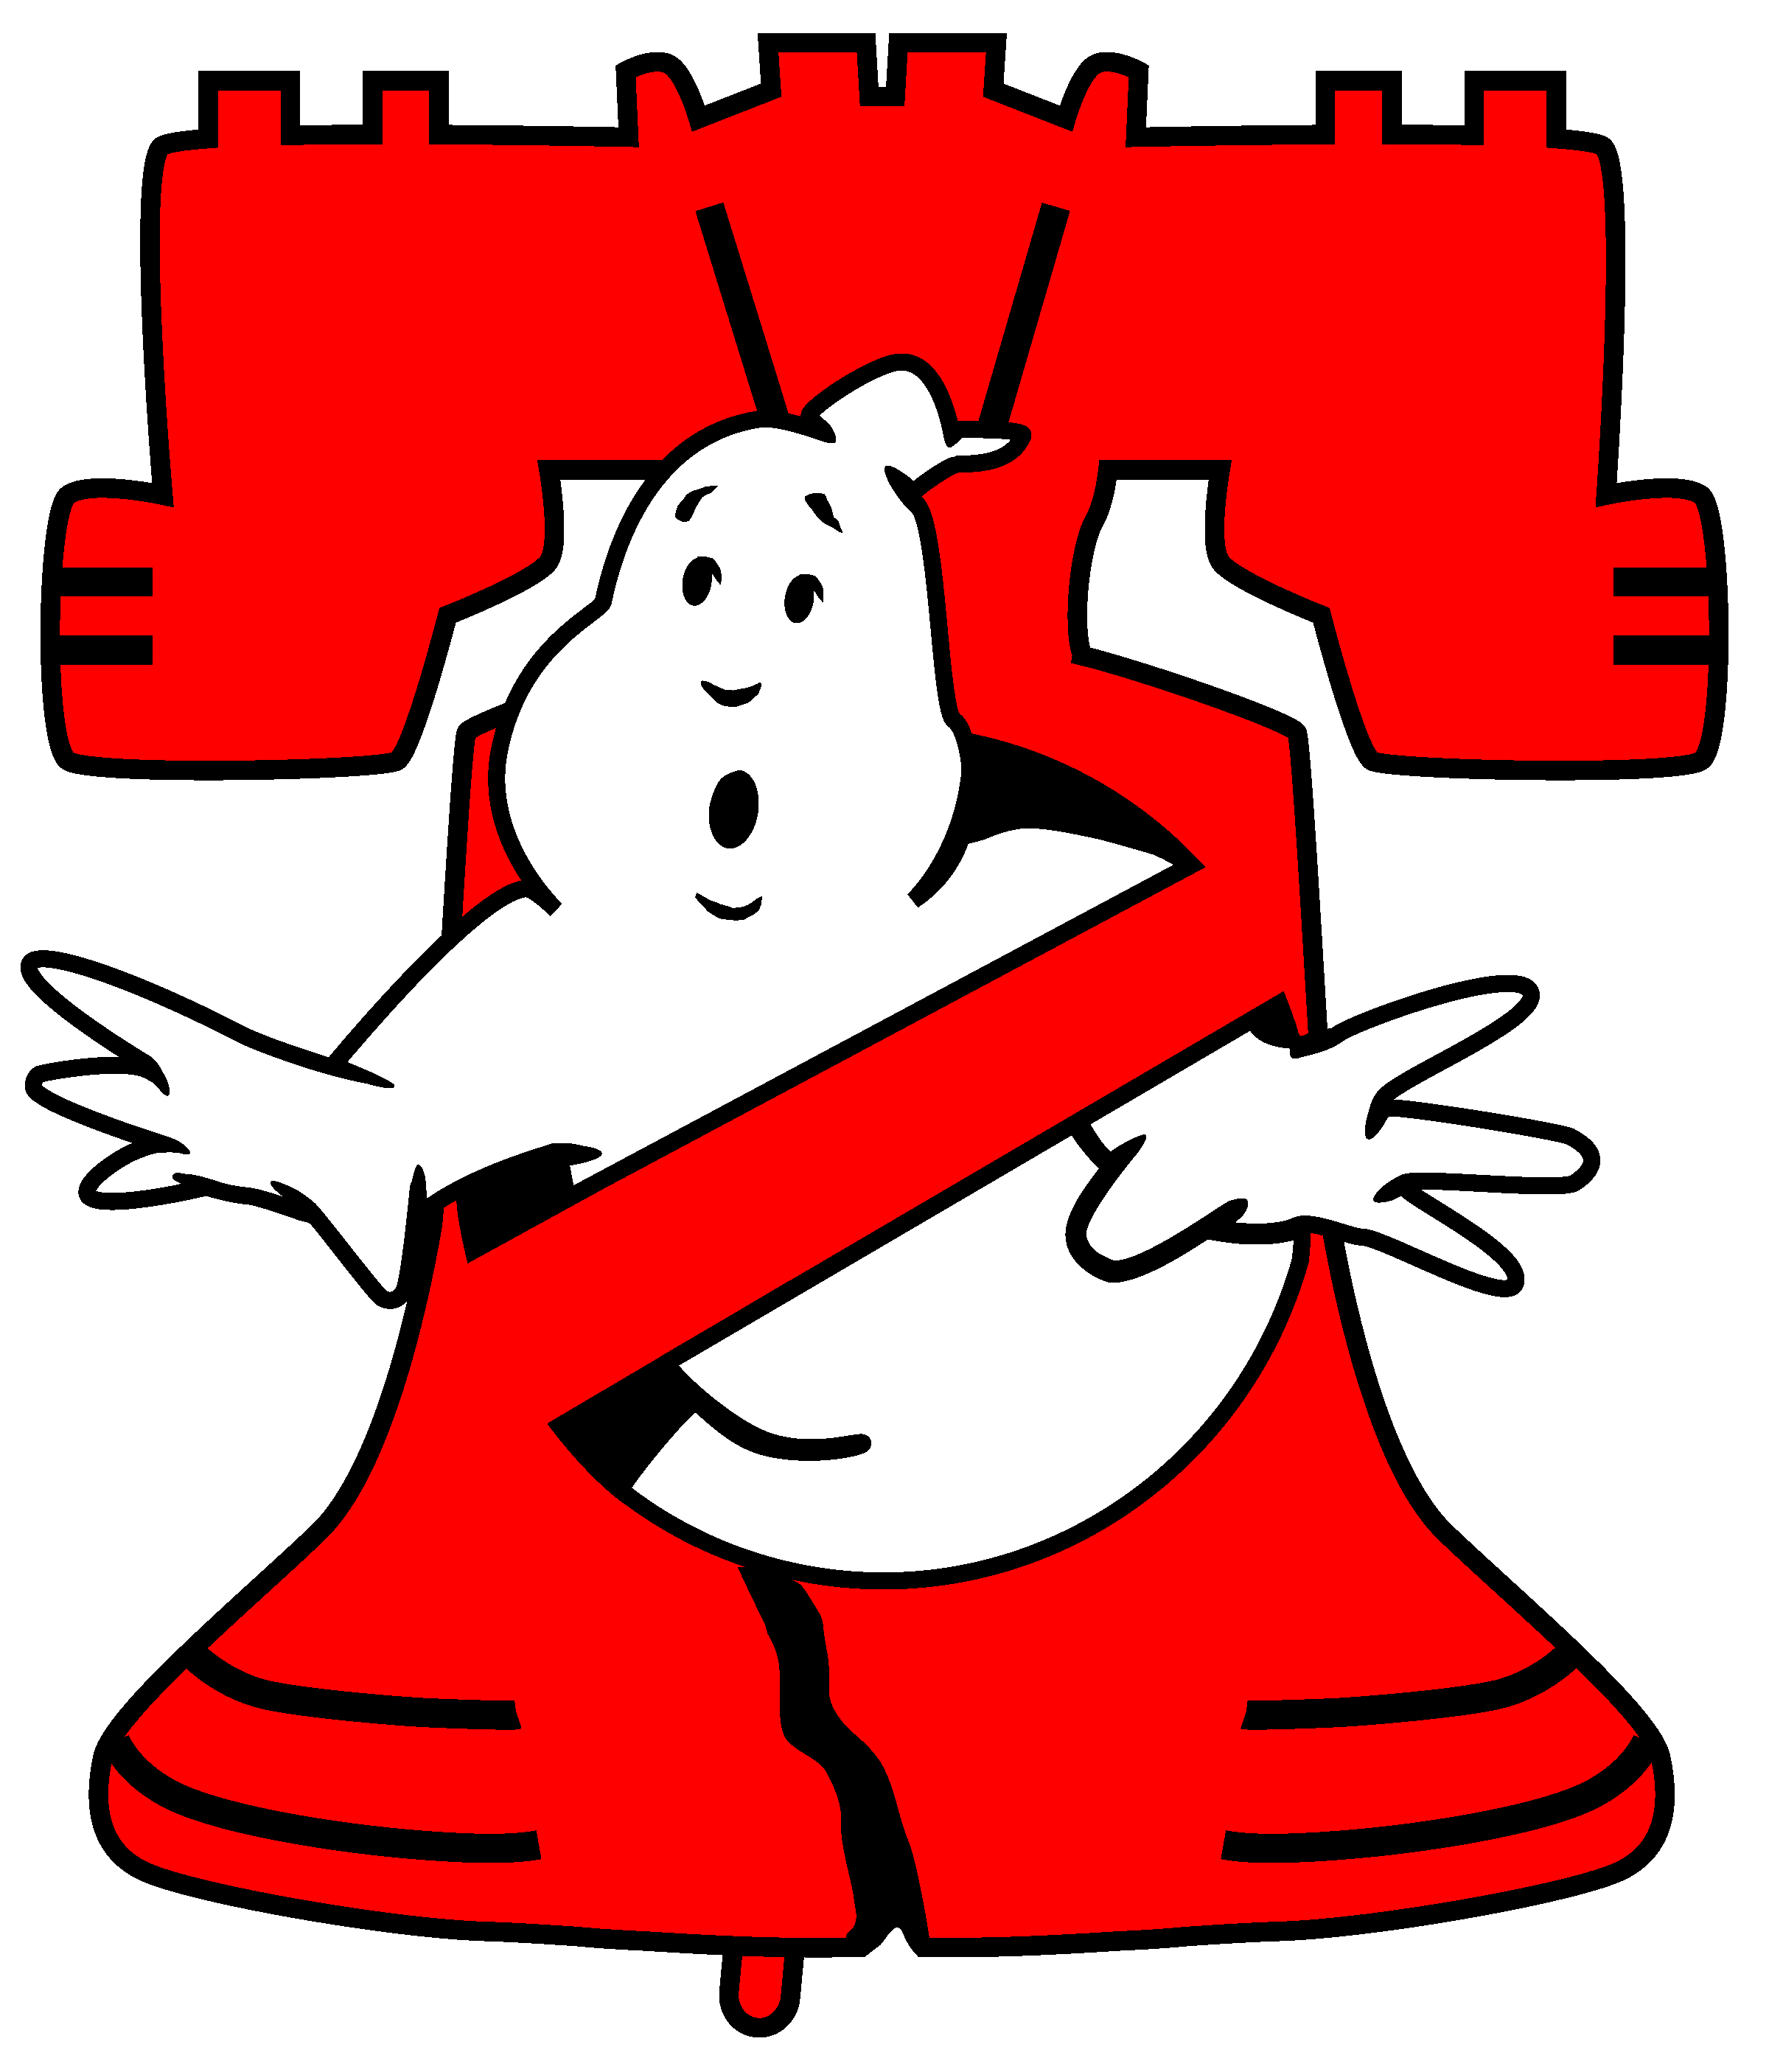 Ghostbusters Clip Art - ClipArt Best